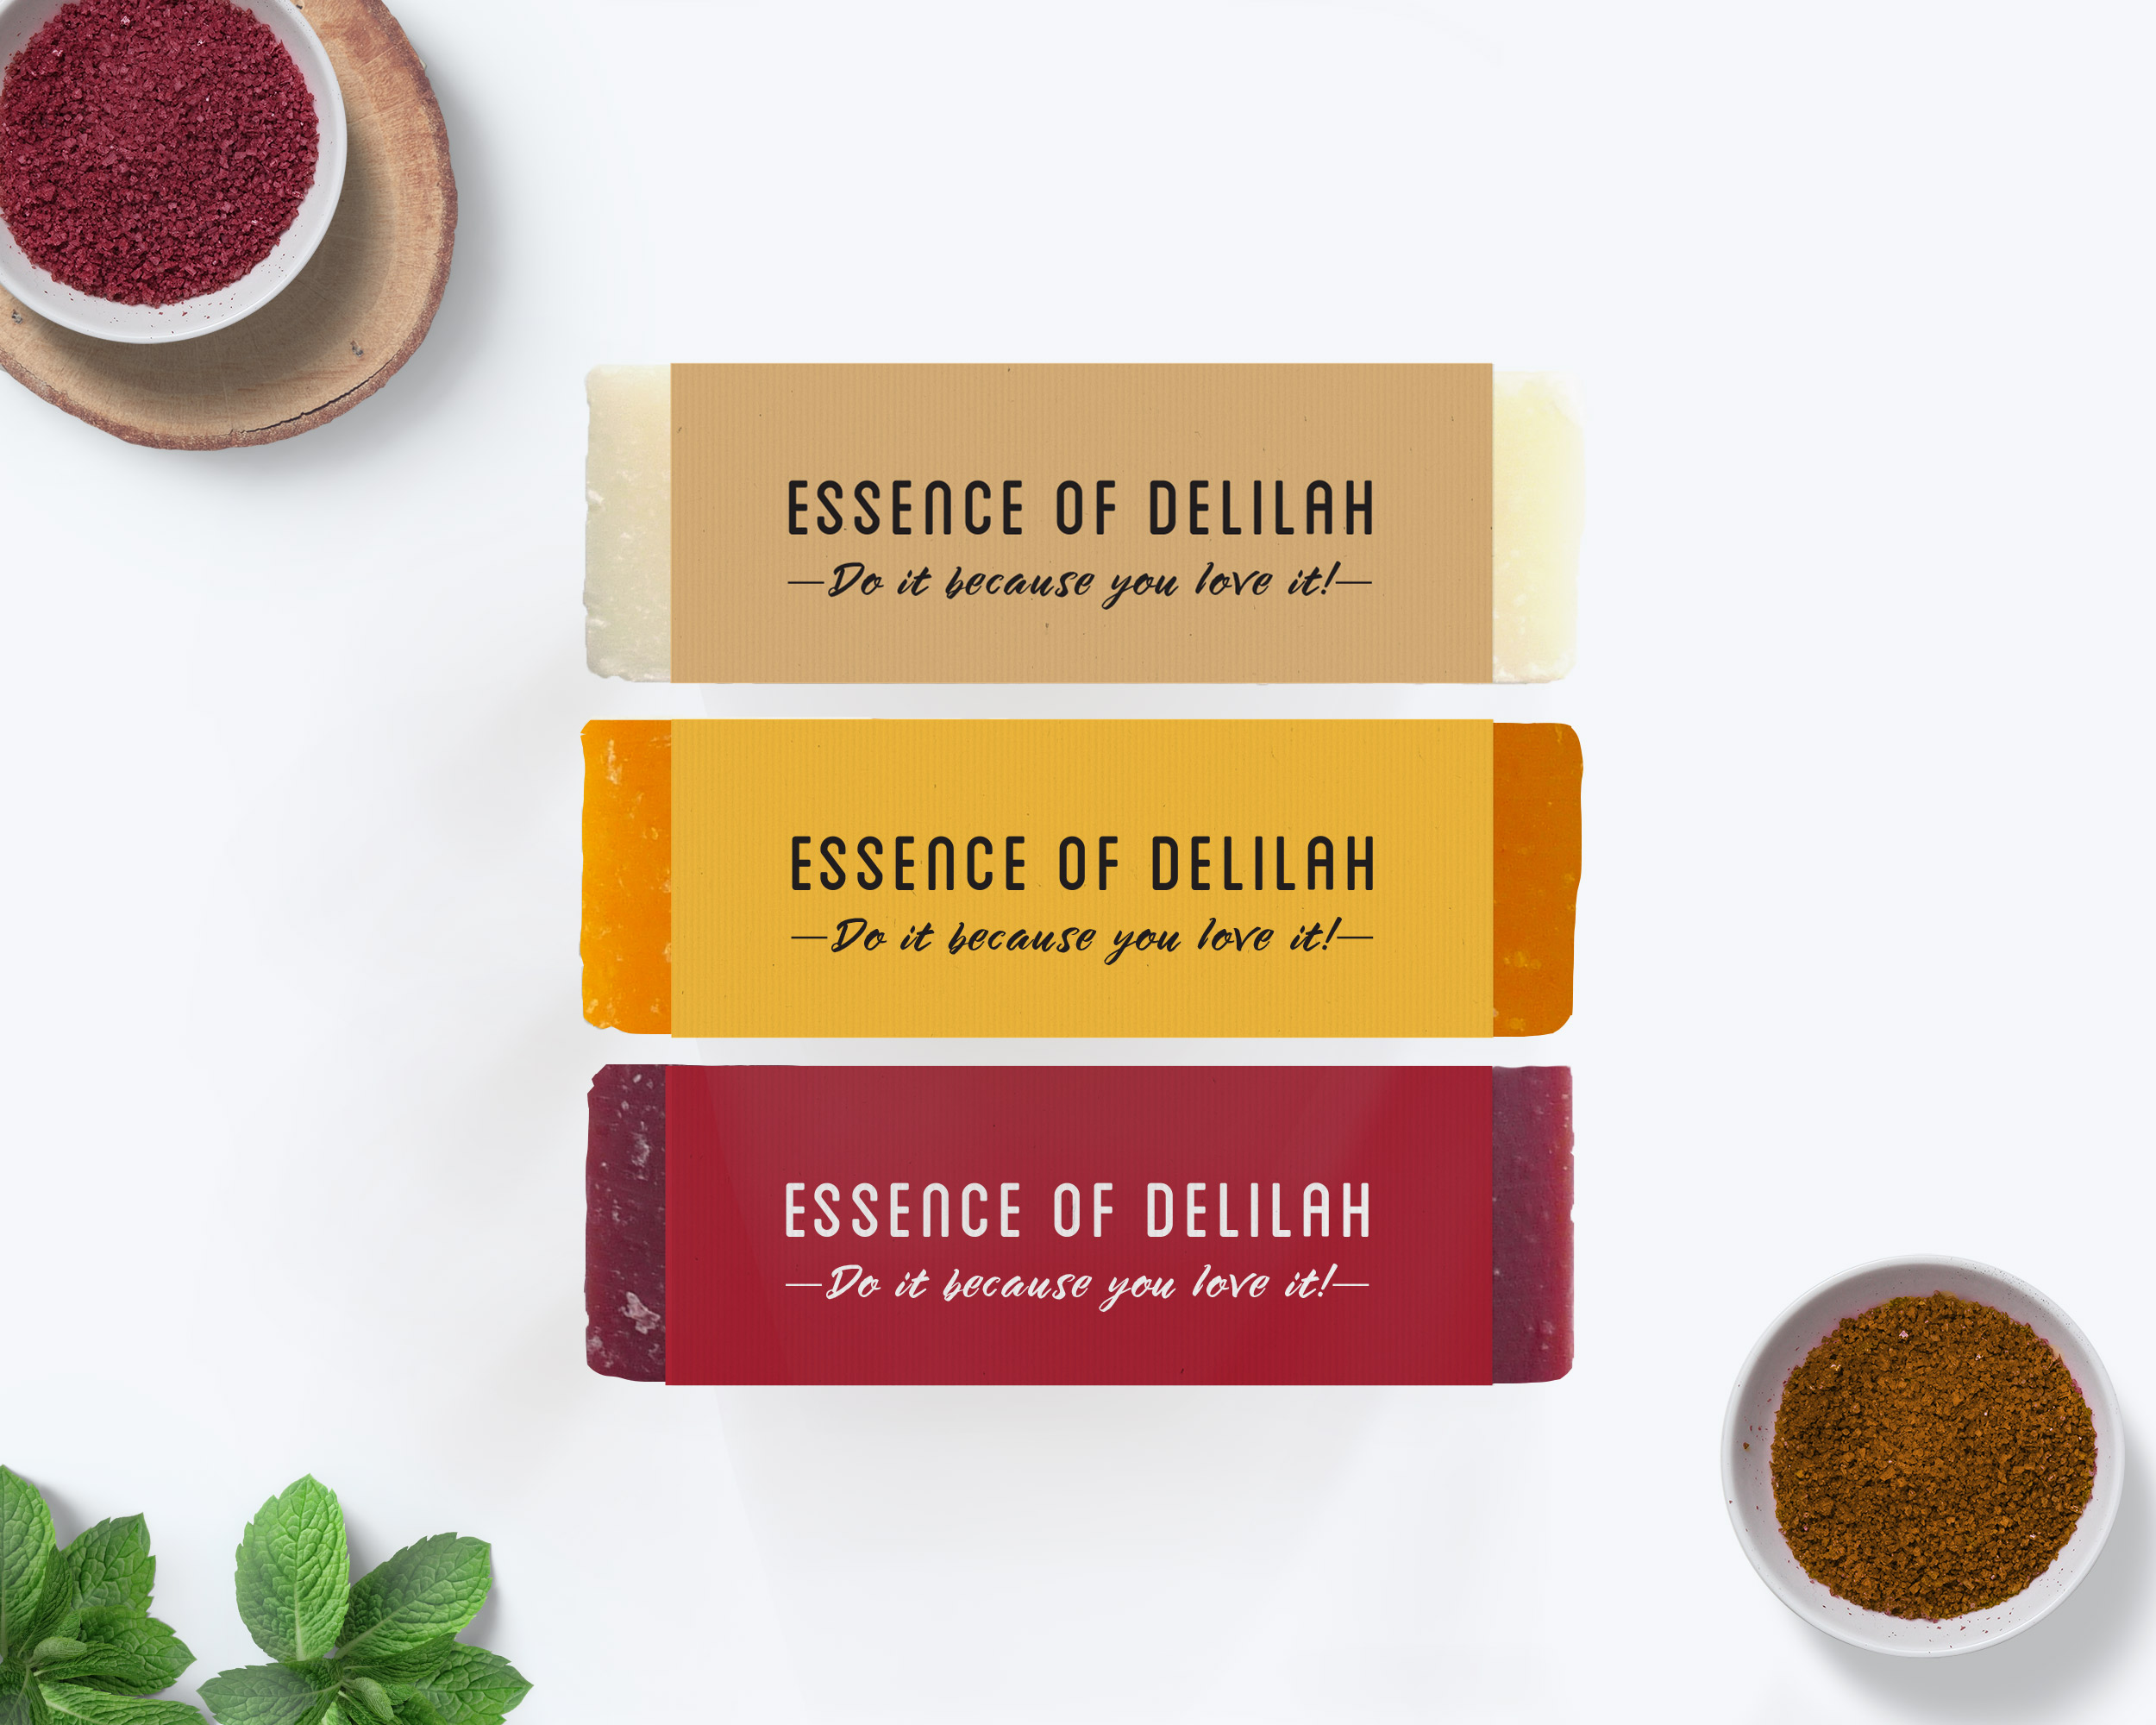 essenceofdelilah_soap.jpg